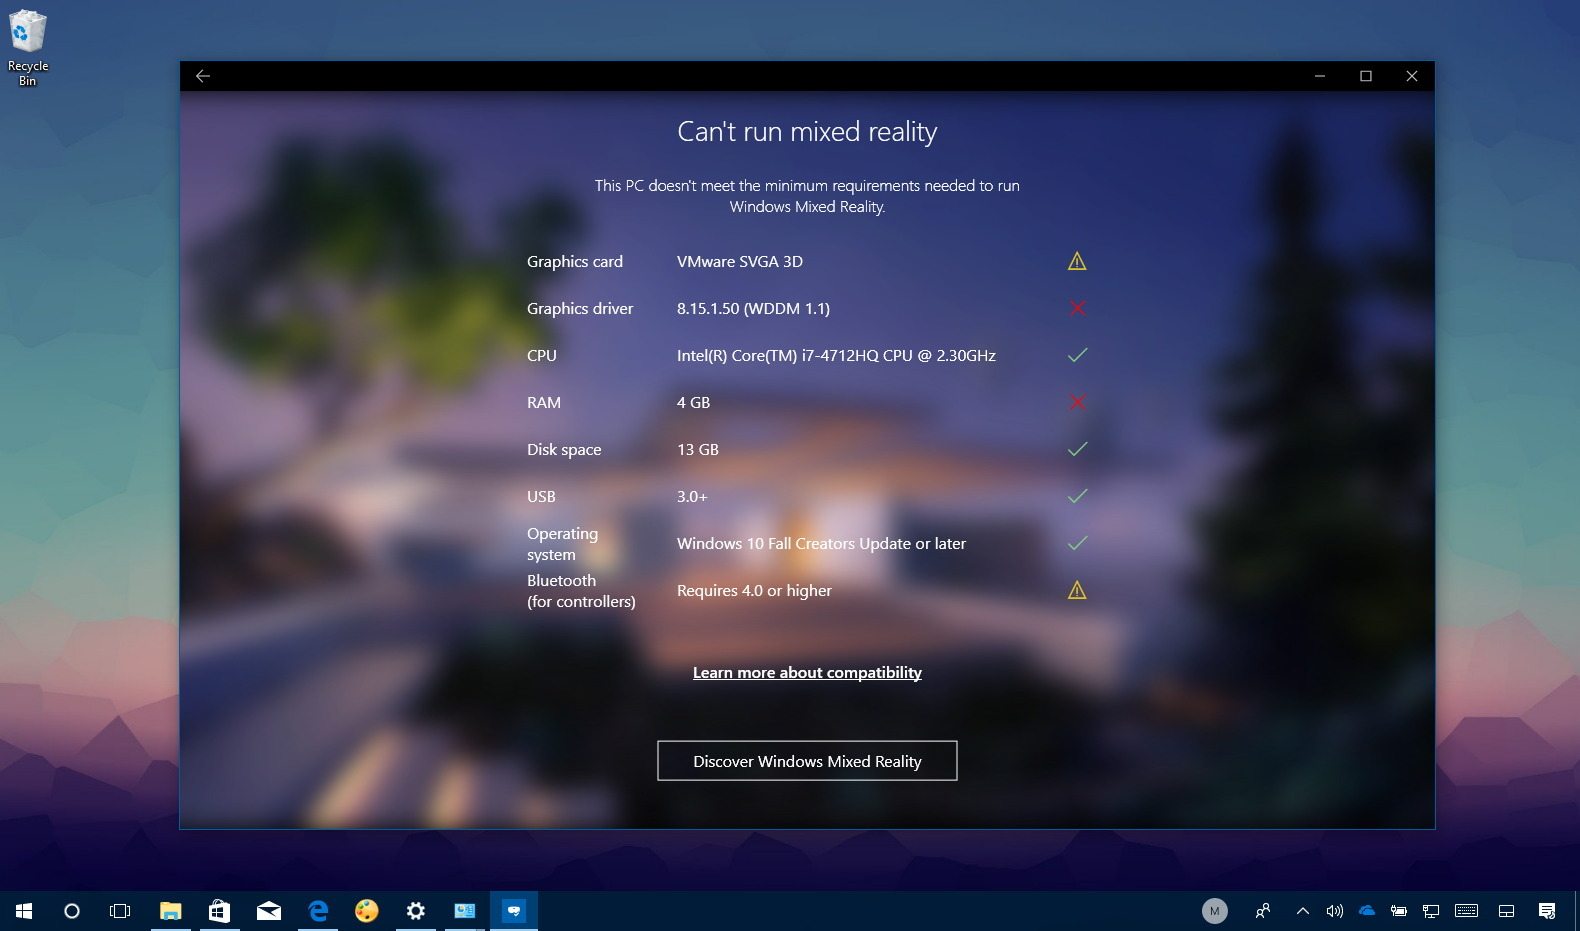 Windows Mixed Reality PC check app